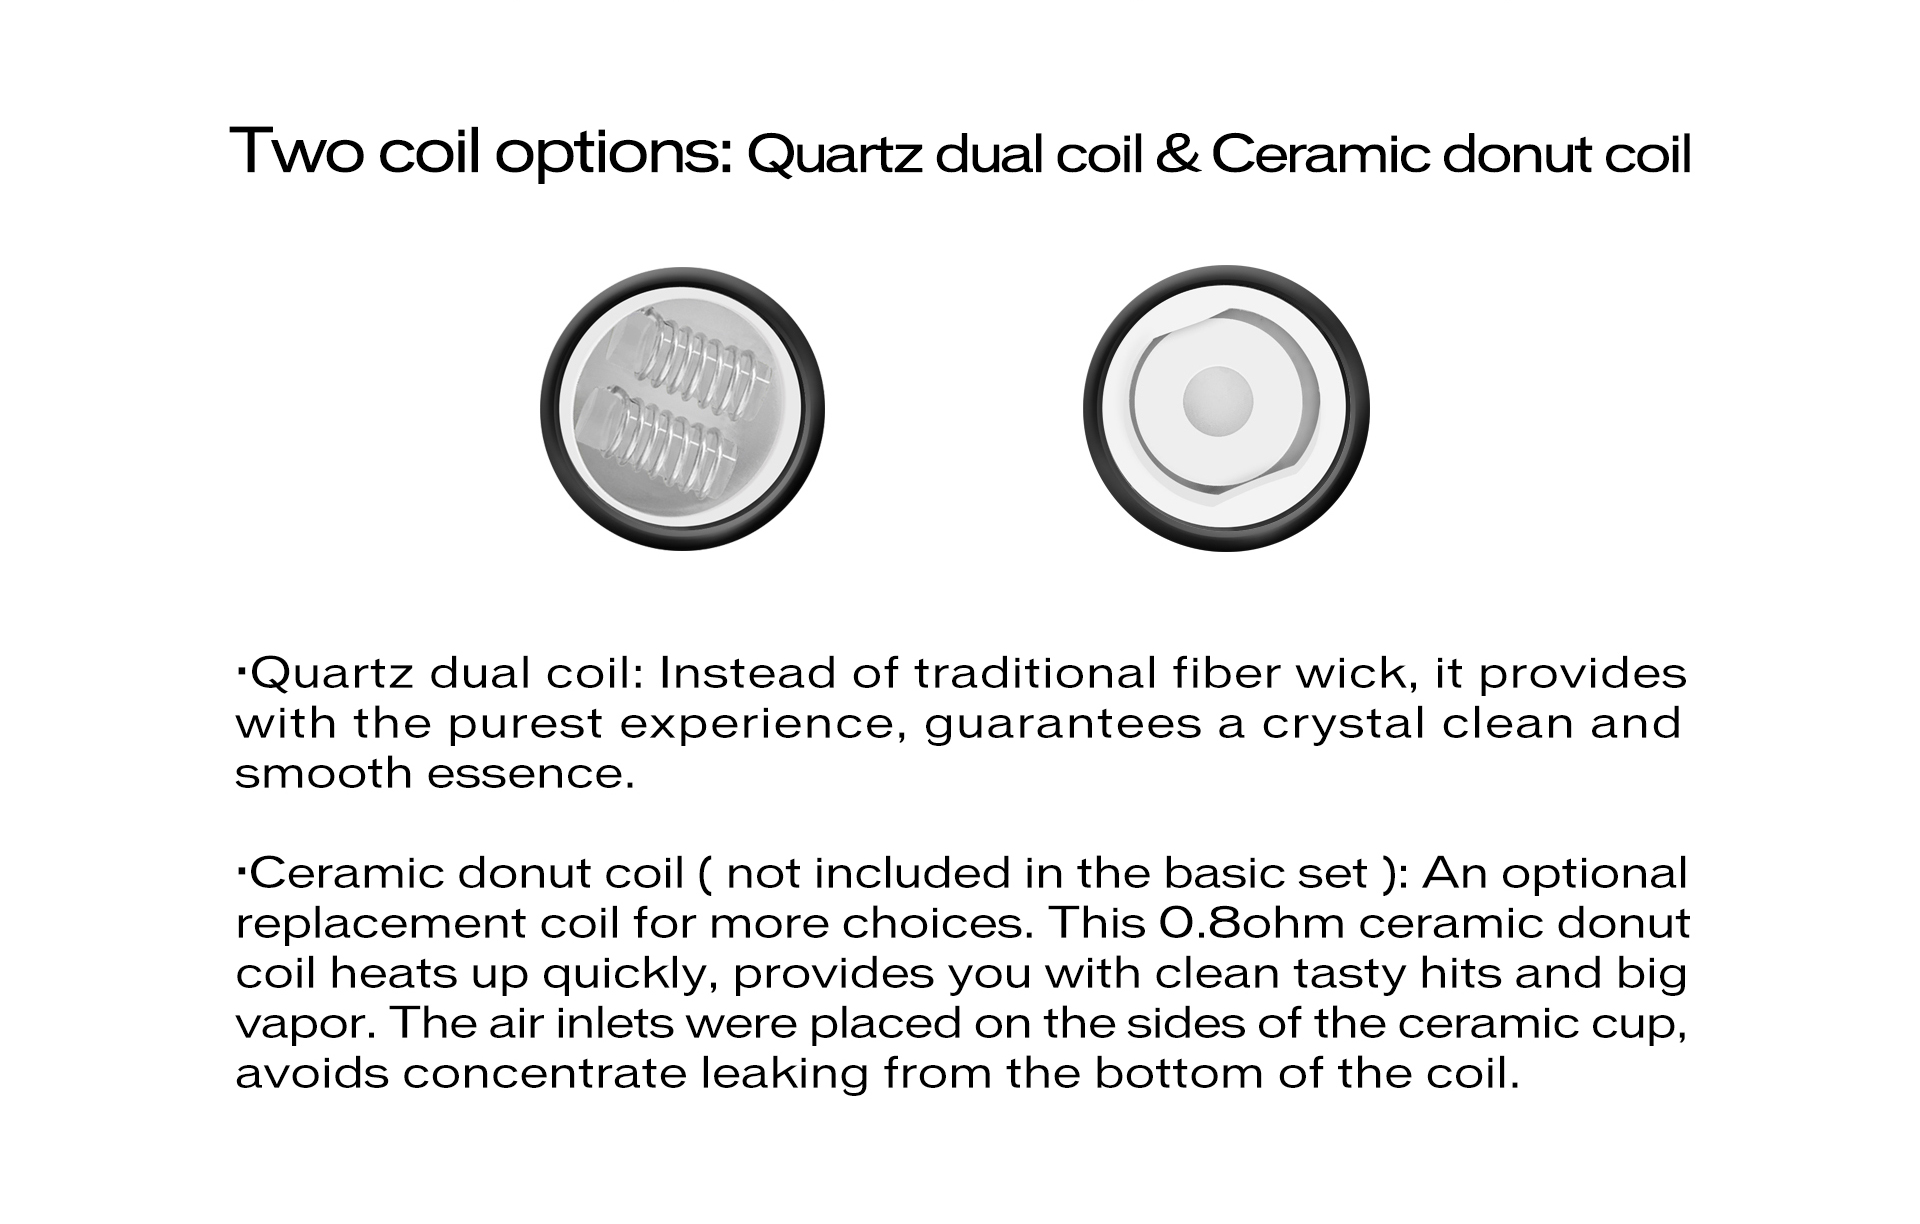 The Yocan Cerum is a full ceramic tank atomizer for that comes with two QDC quartz dual coil heating elements for wax.